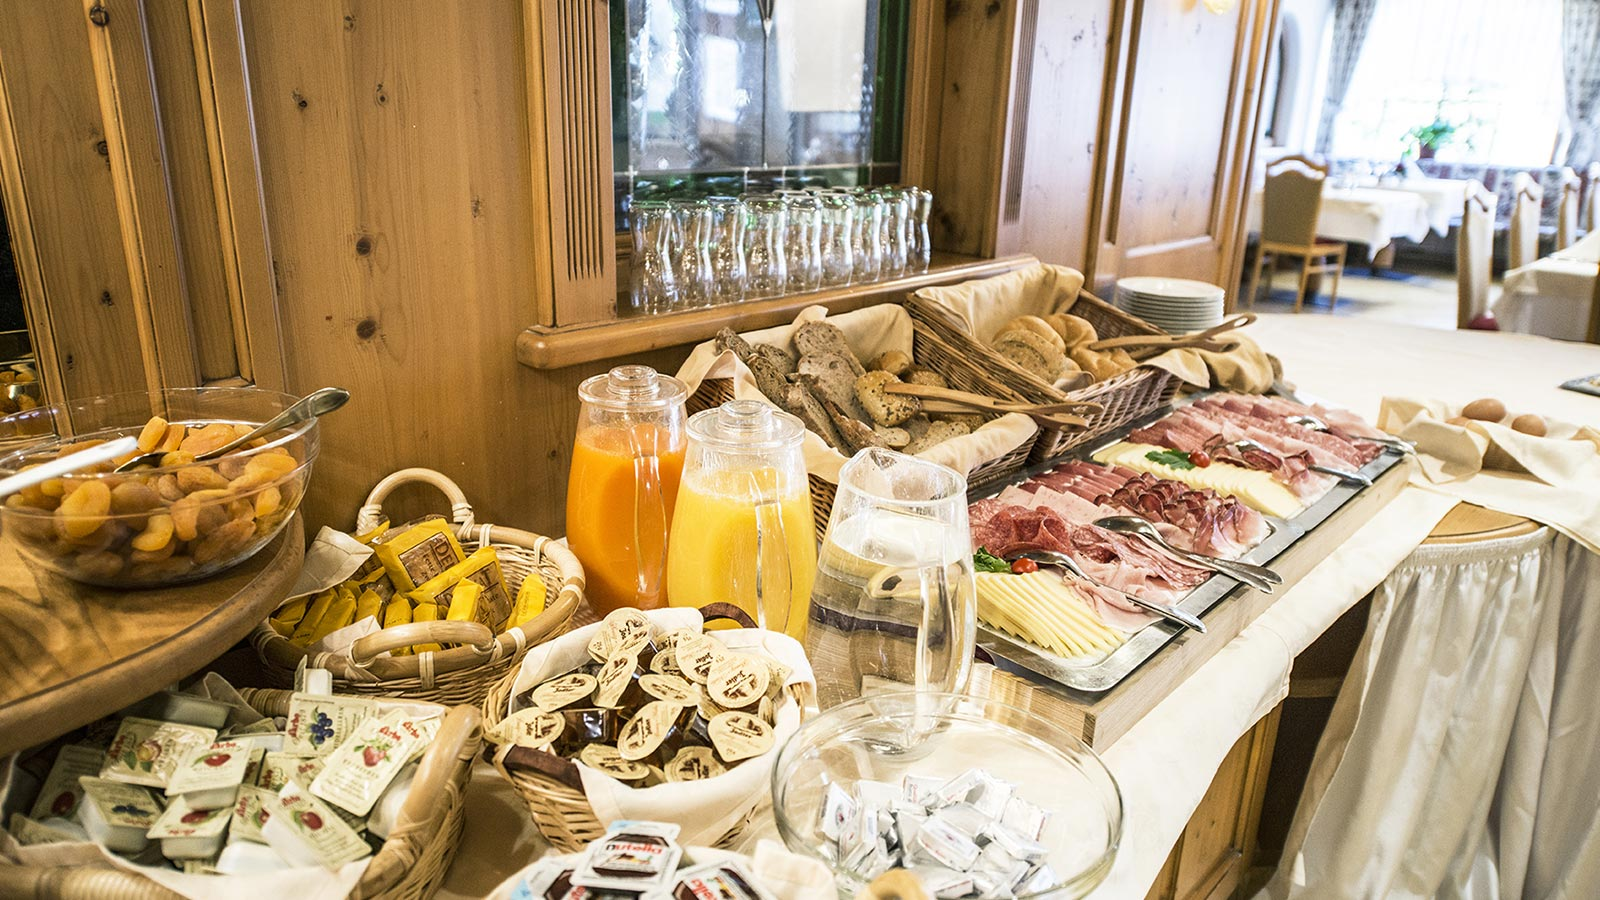 Rich breakfast buffet at our hotel in Val Casies with numerous juices, sweets, cold cuts and jams.